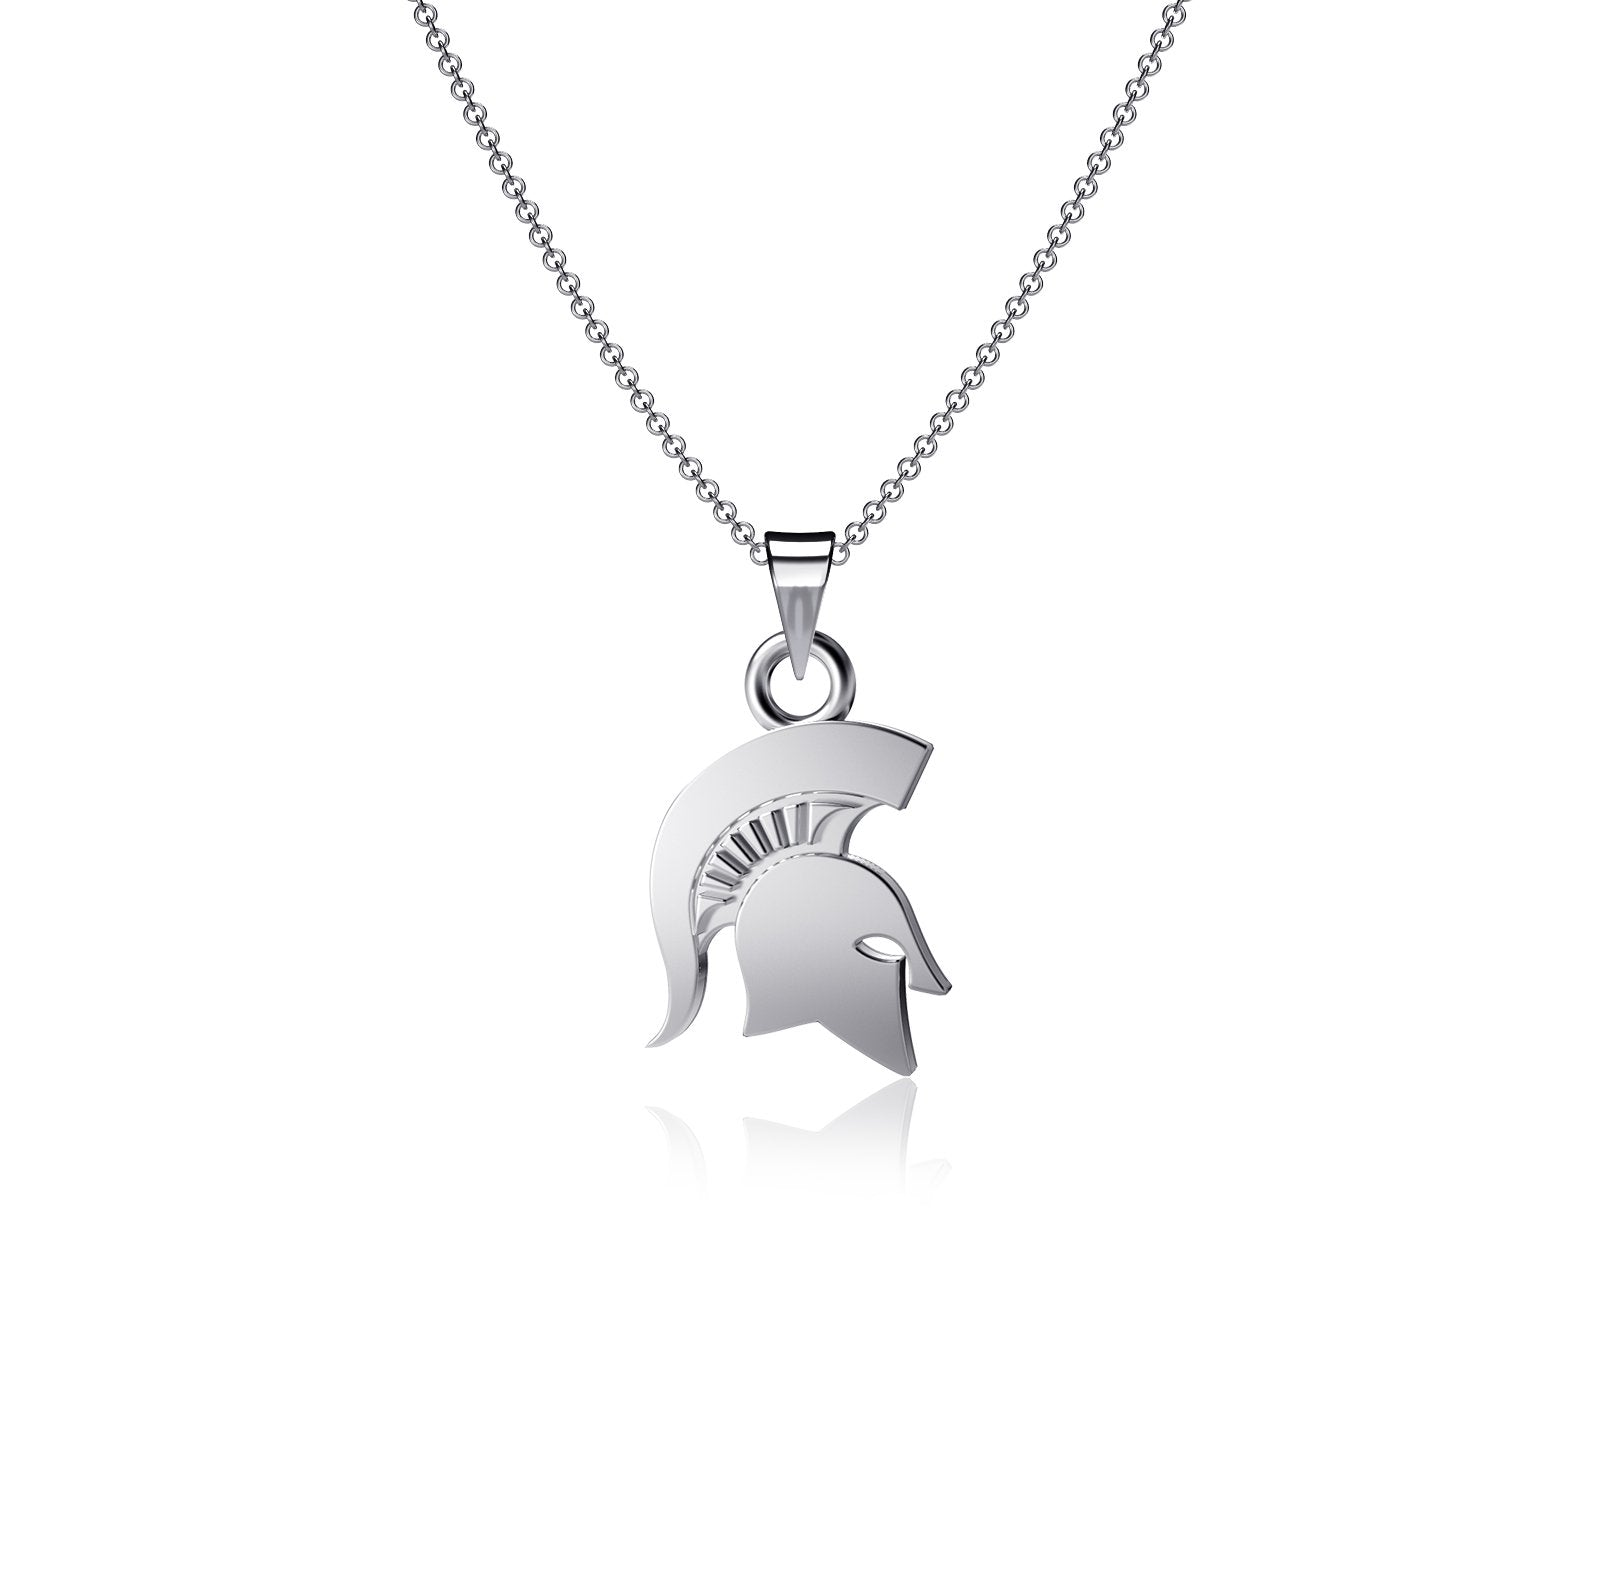 Michigan State University Pendant Necklace